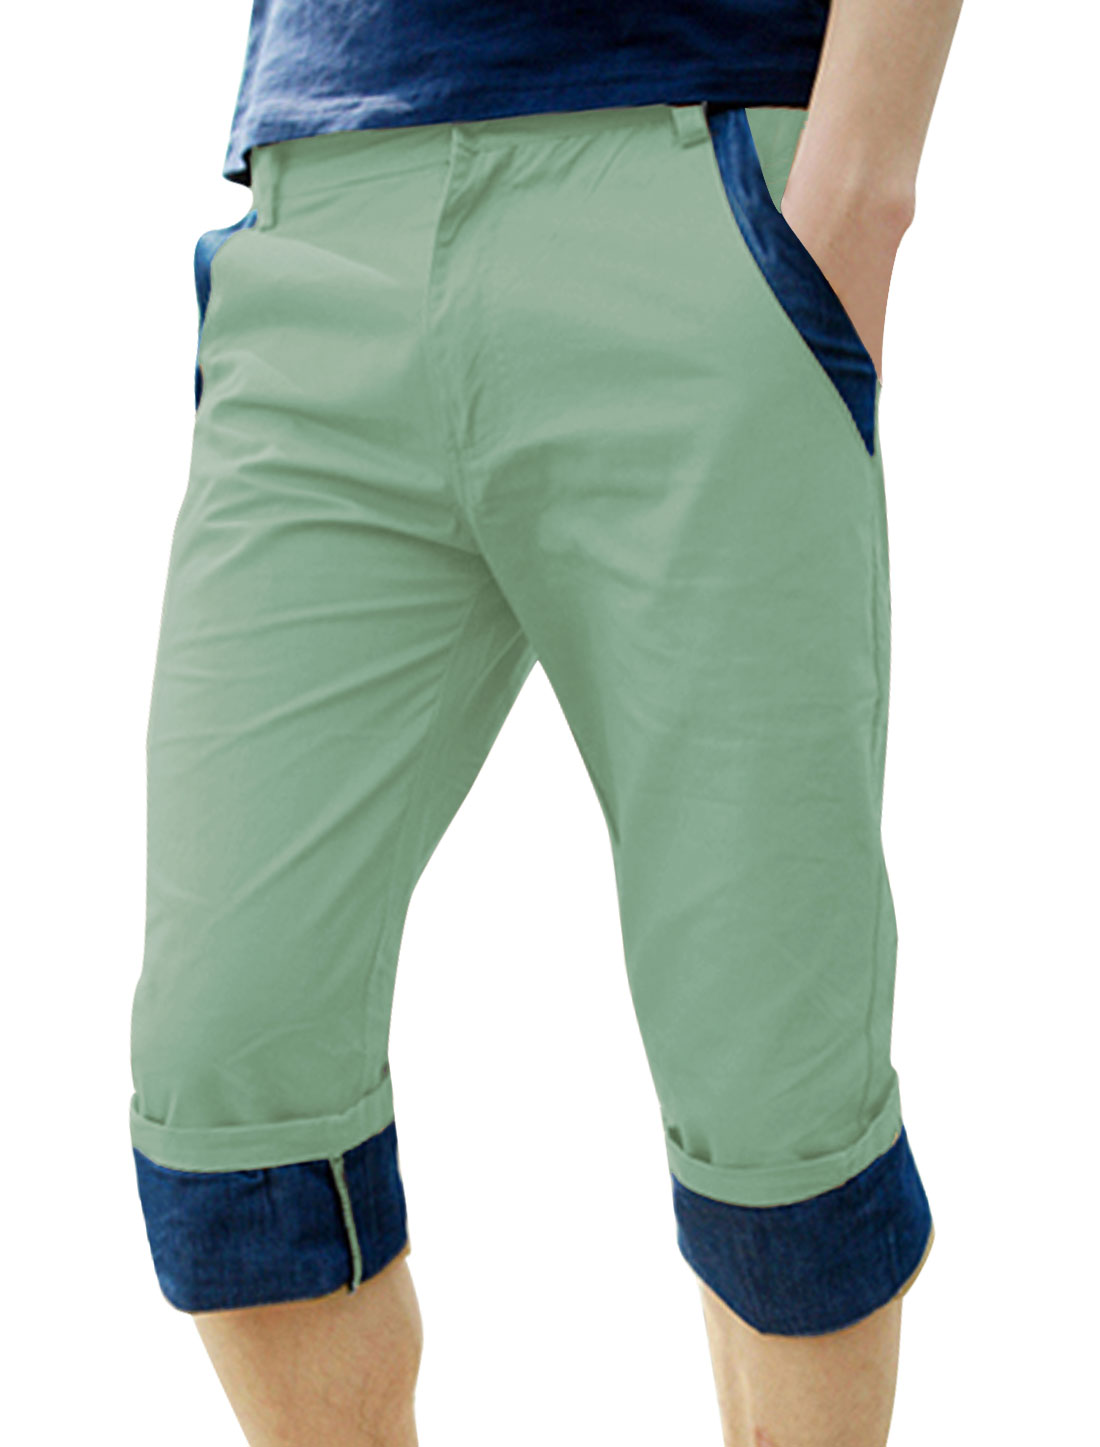 Men Slant Pockets Front Roll Up Cuffs Casual Capris Pants Aqua W32